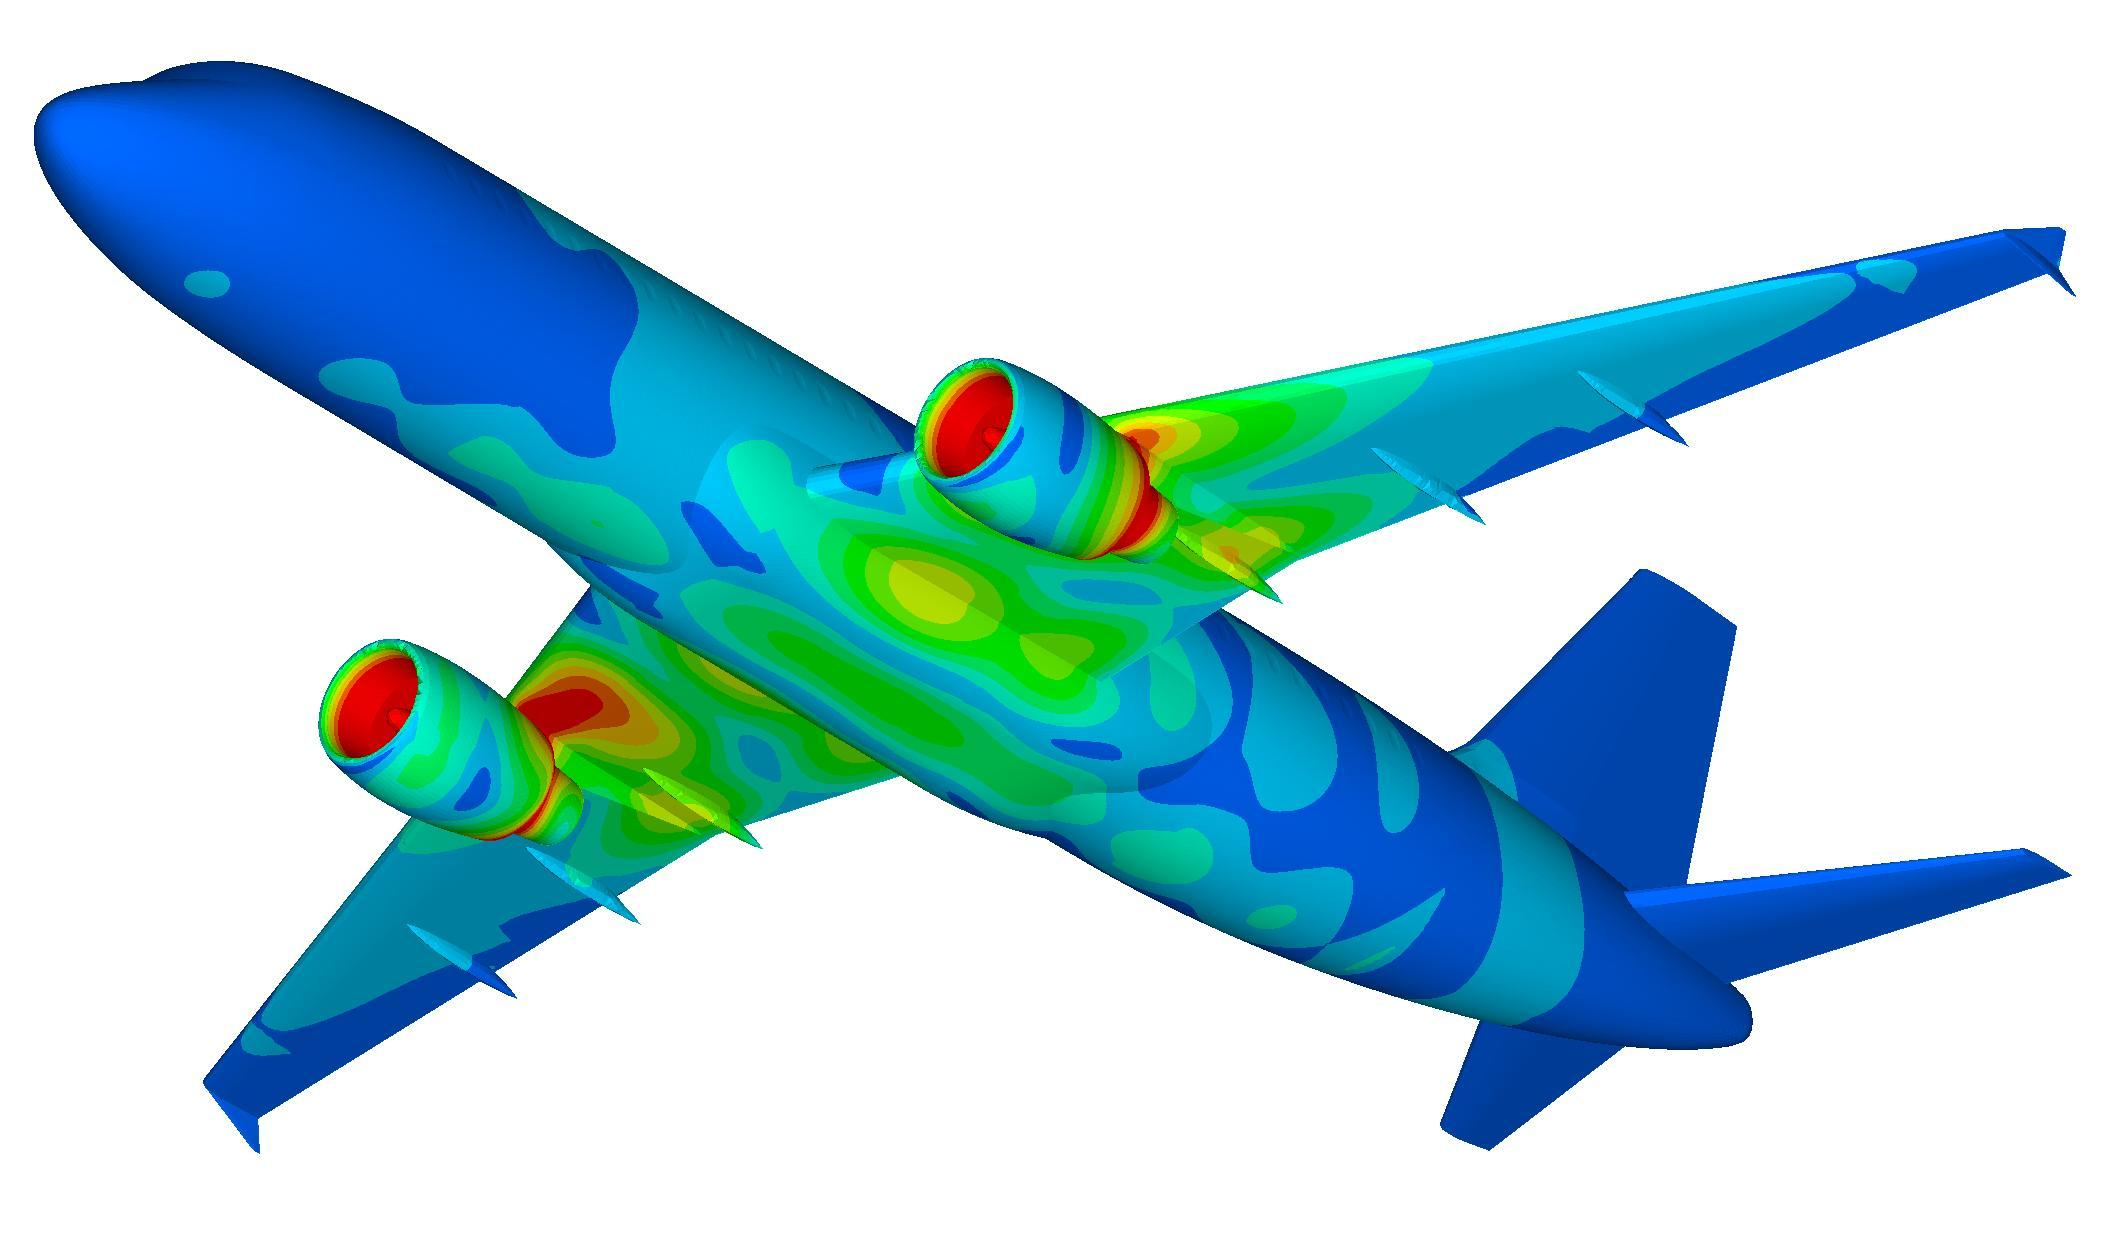 Pity, that Finite element modeling for stress analysis